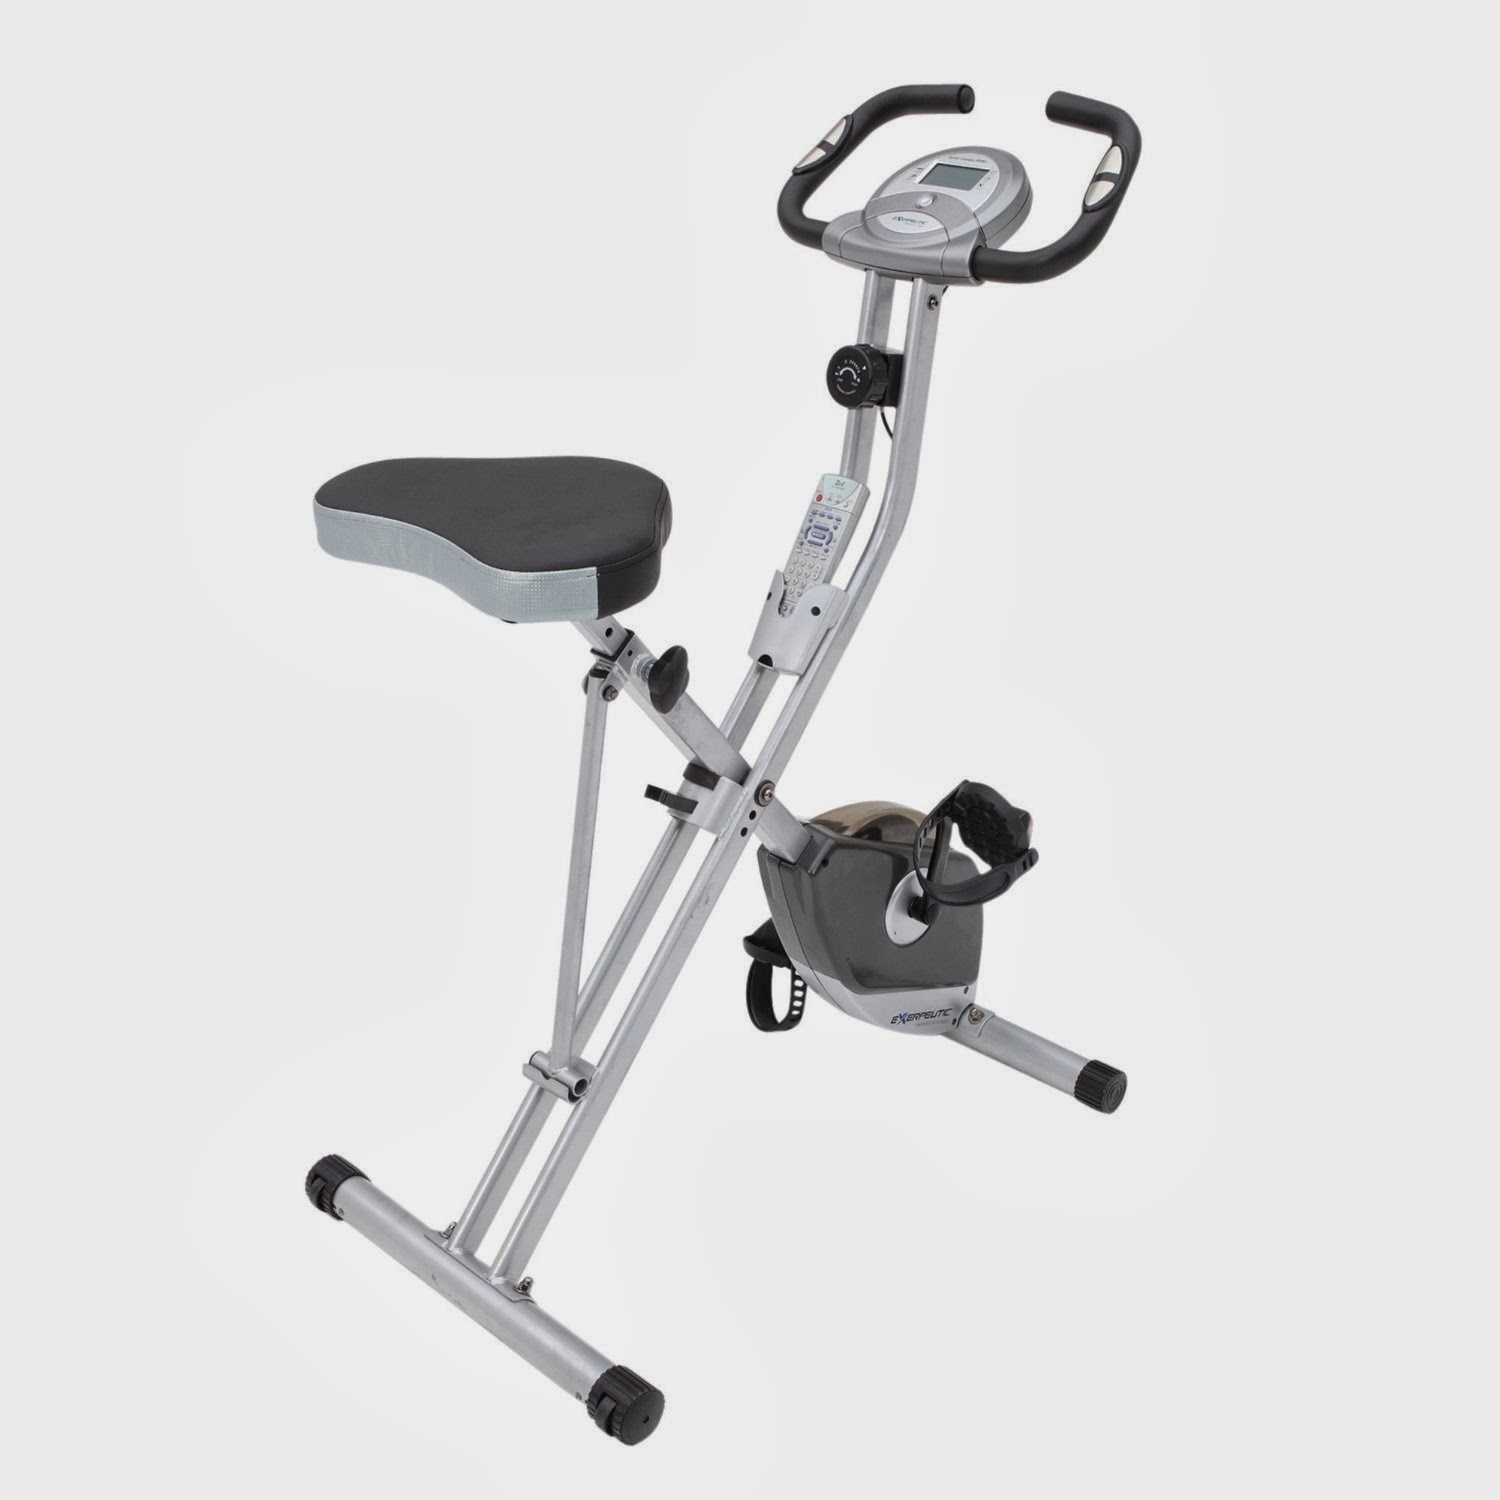 Exerpeutic Folding Magnetic Upright Exercise Bike with Pulse, picture, review features & specifications